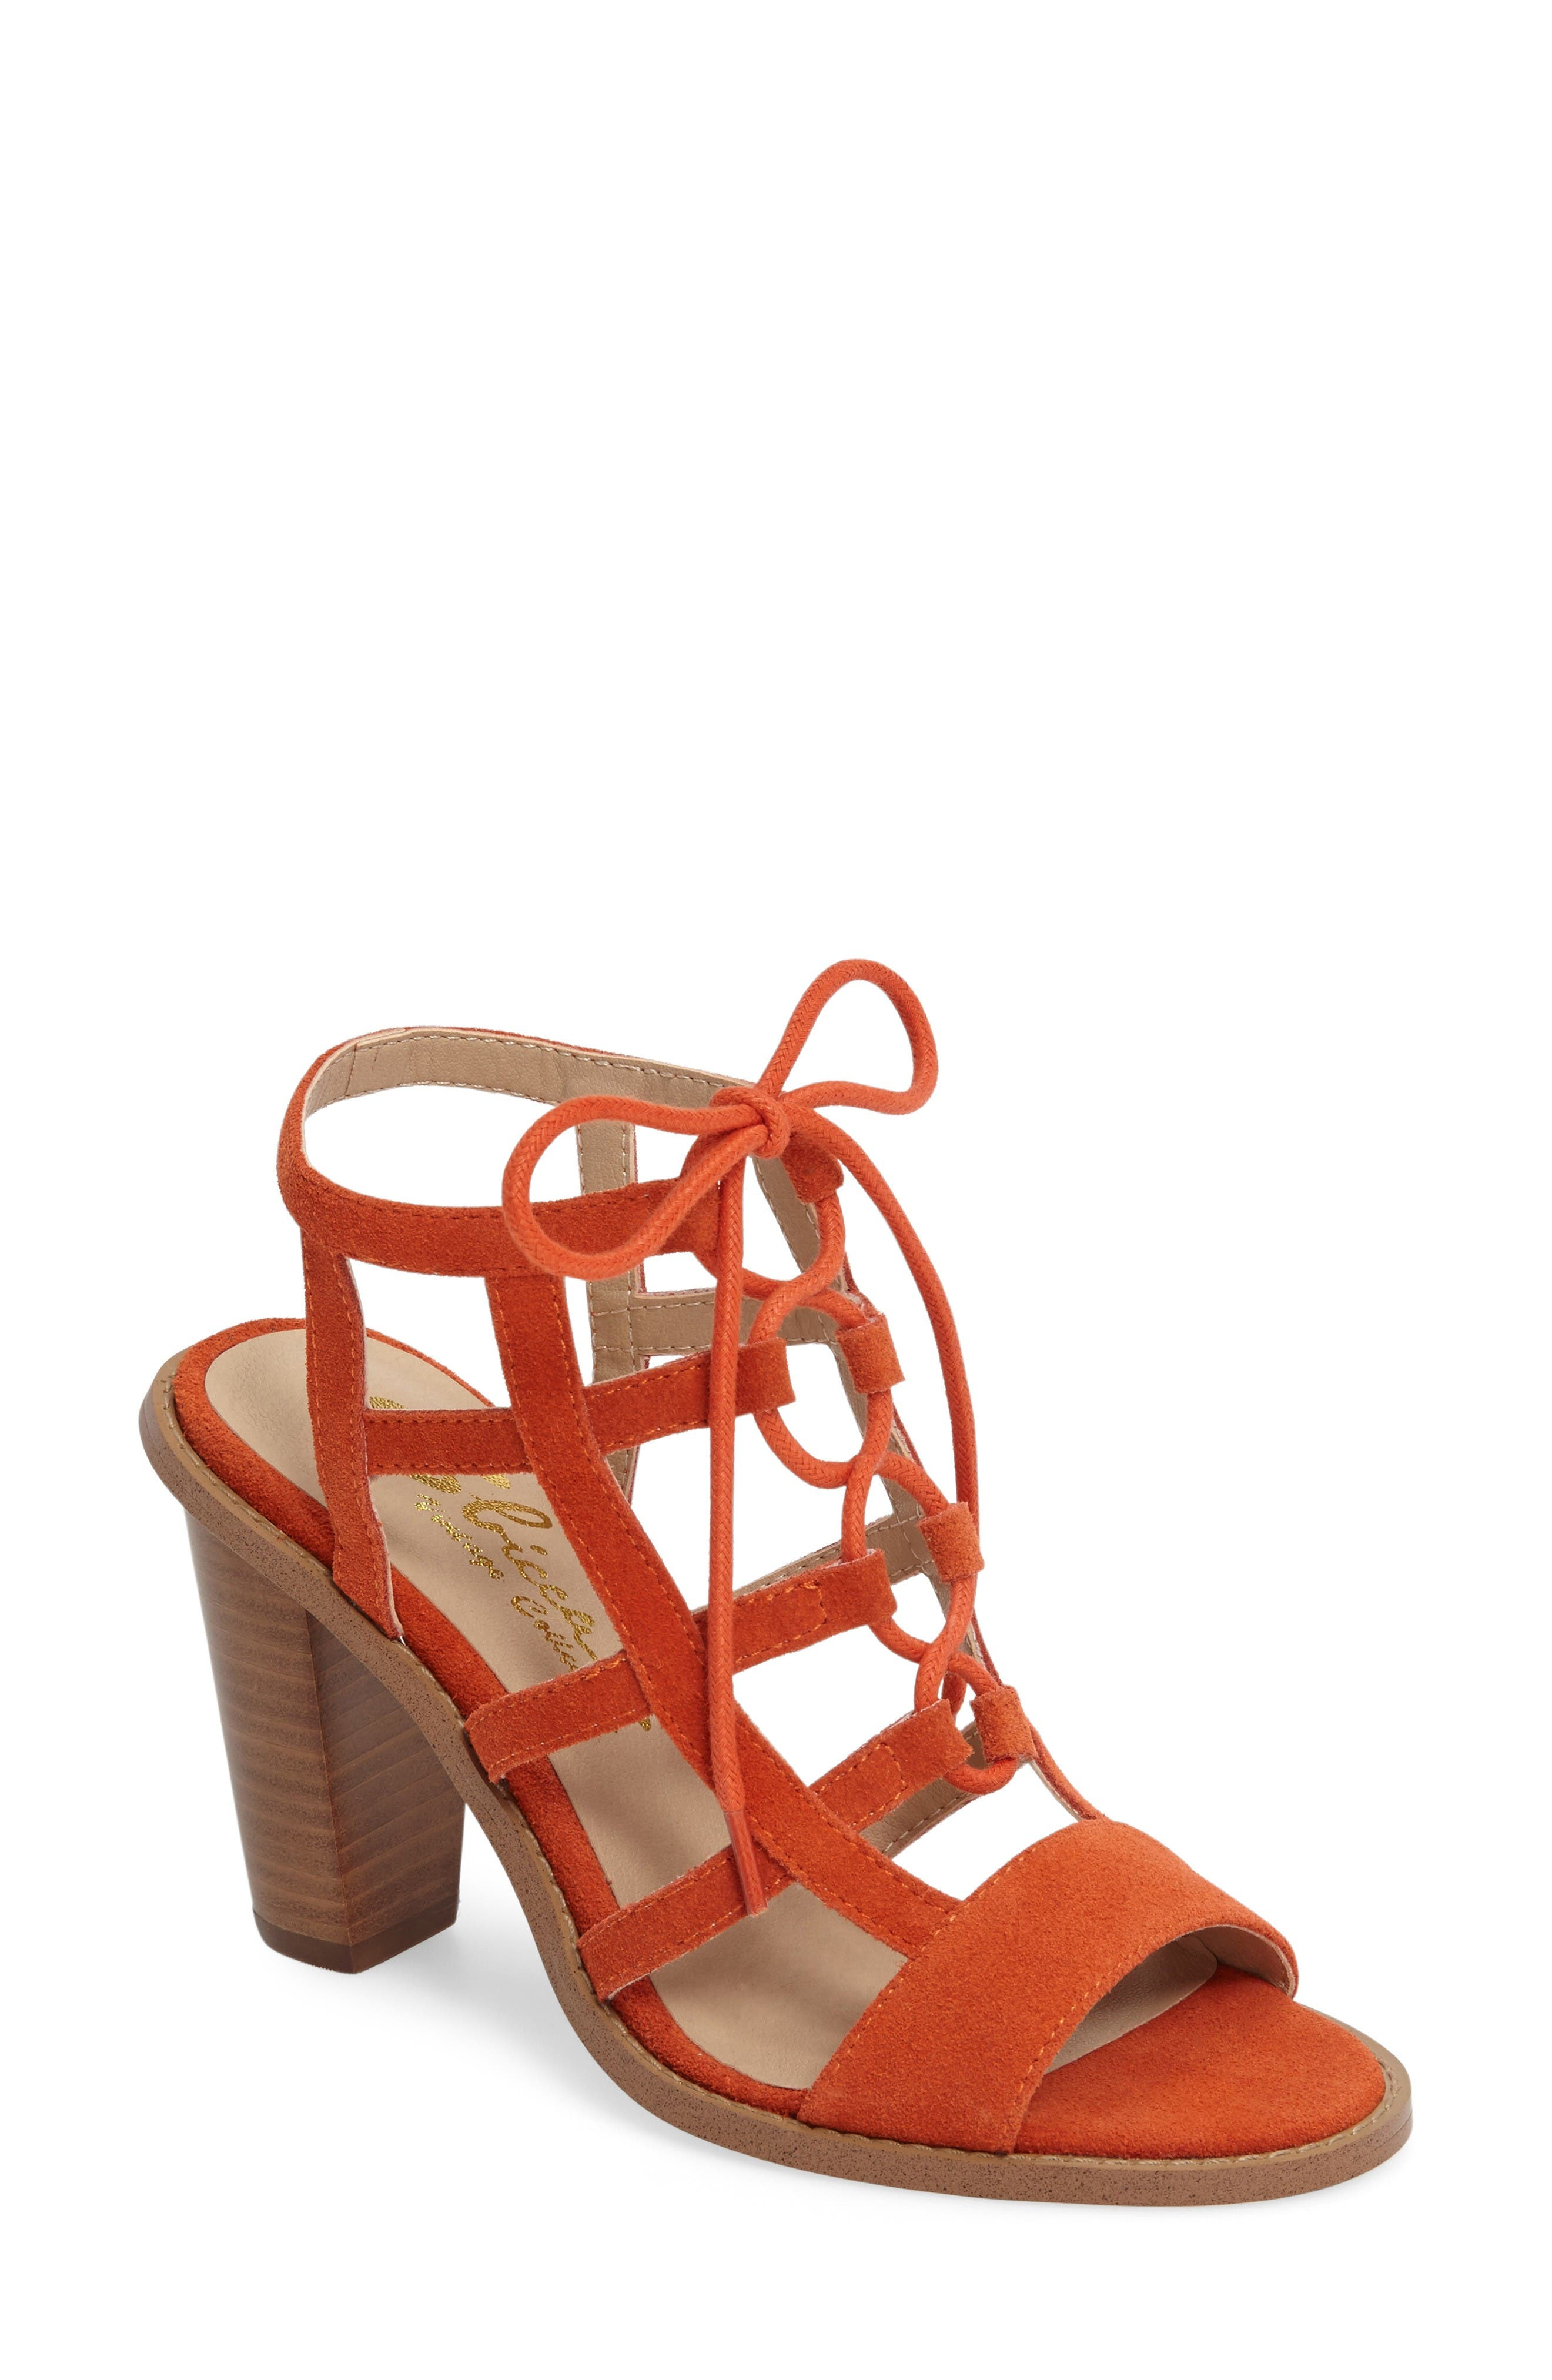 Main Image - Sbicca Sanni Cage Sandal (Women)